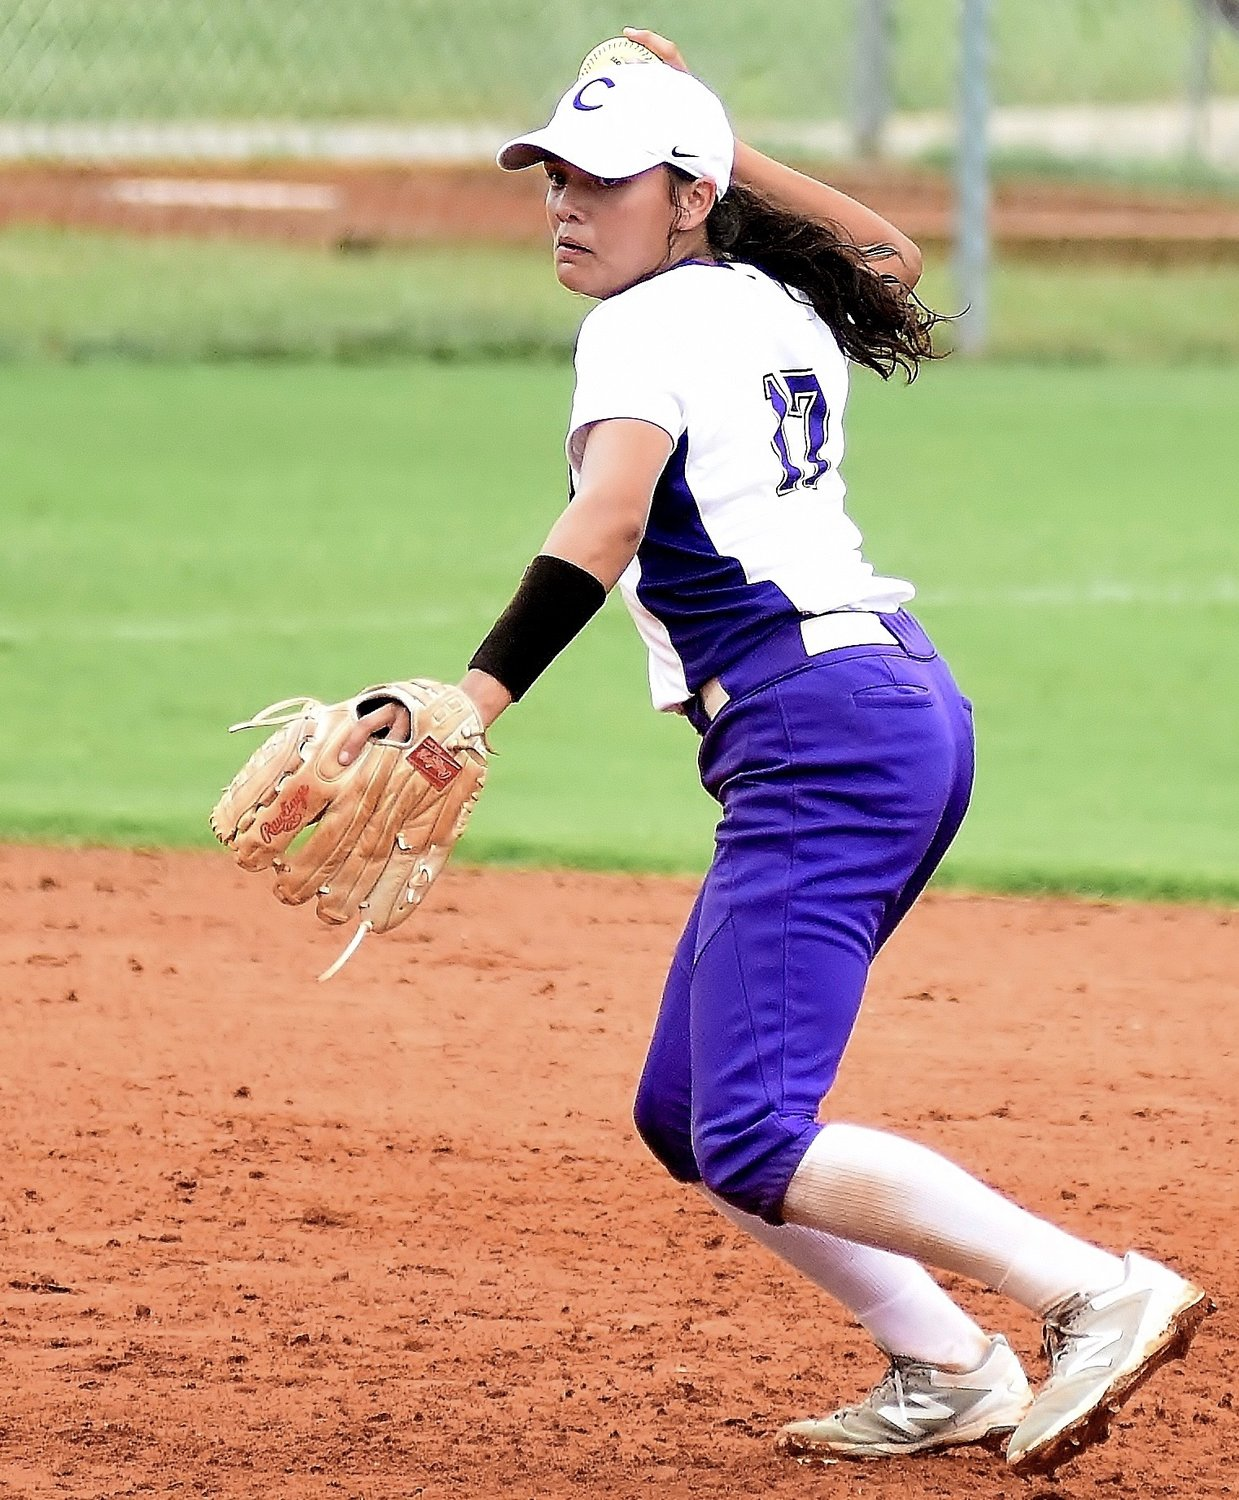 Cio Seigler will be one of three seniors on the Cartersville softball team this fall. With a large number of players with varsity experience returning and the addition of a few talented youngsters, the Canes hope to produce a successful 2019 season.